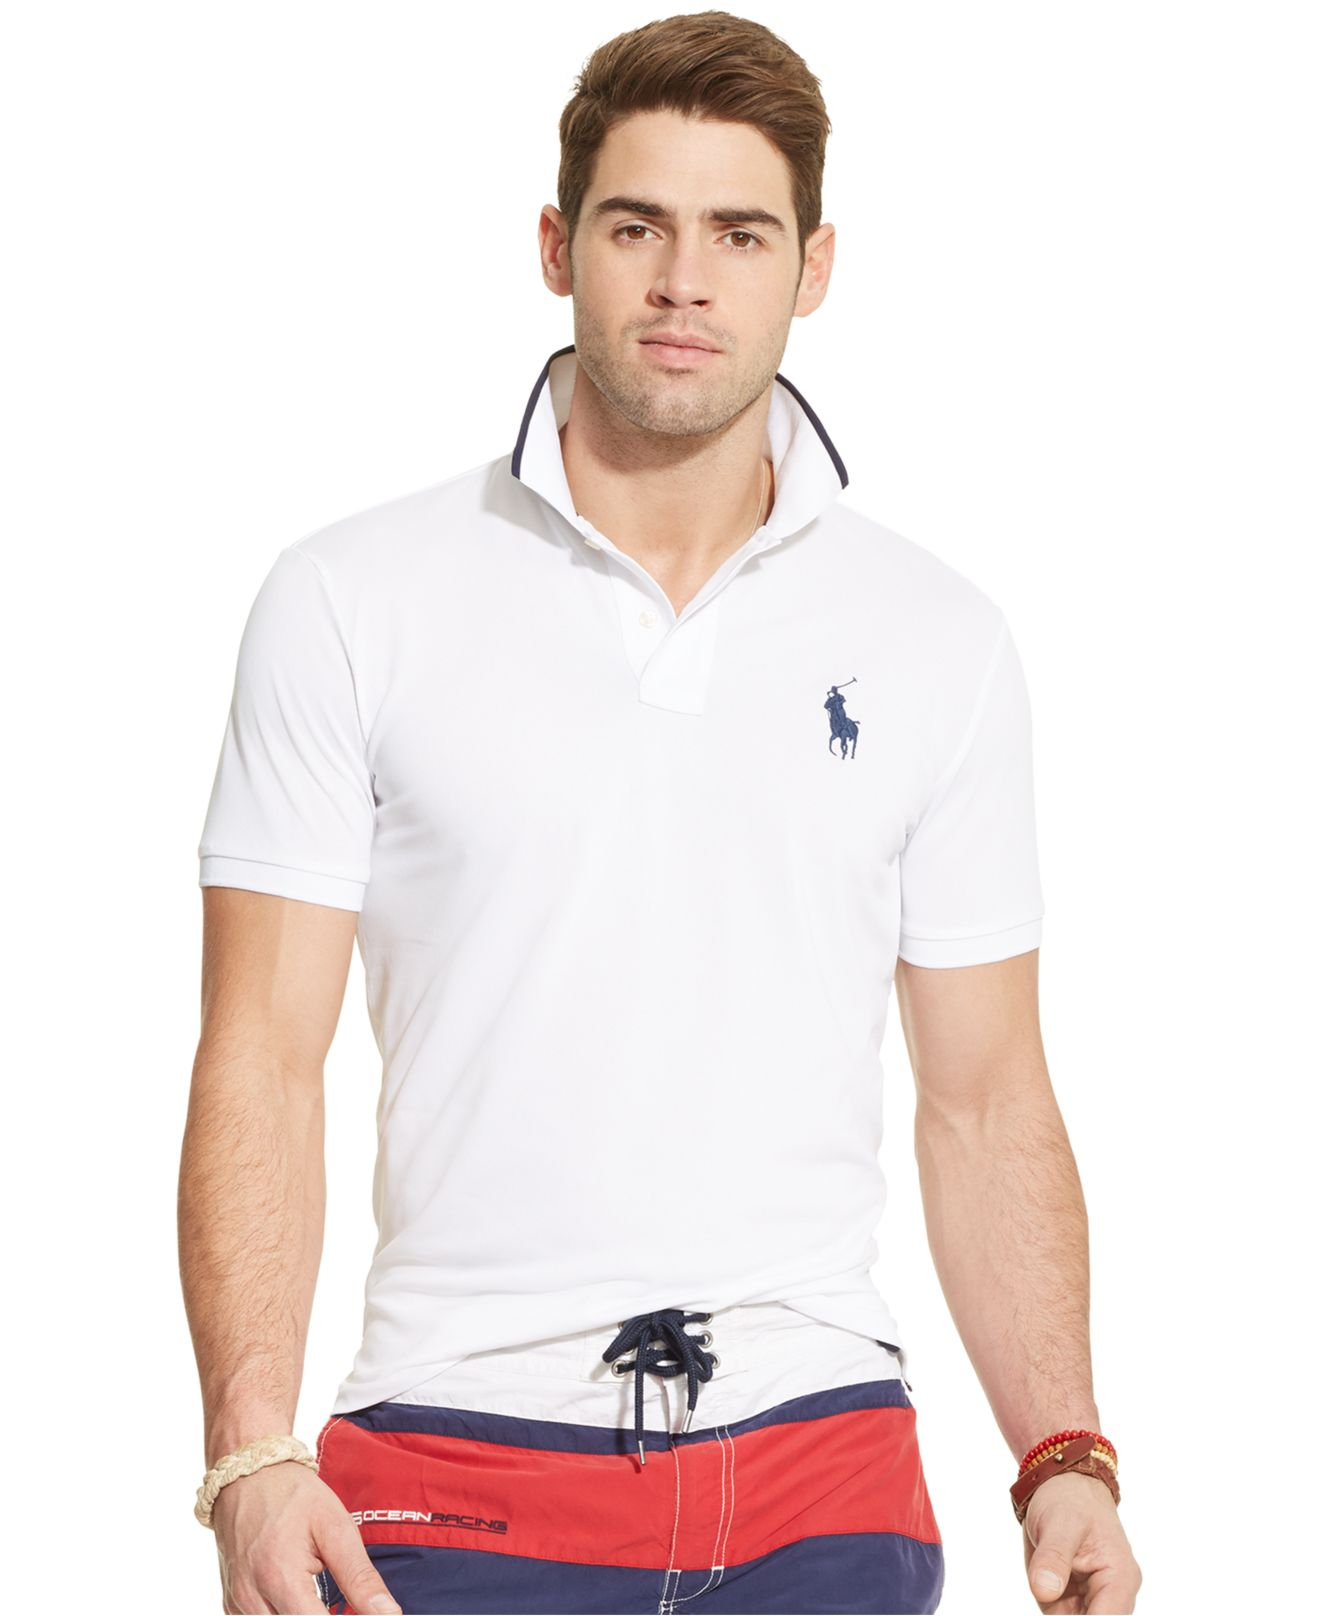 lyst polo ralph lauren performance mesh polo shirt in white for men. Black Bedroom Furniture Sets. Home Design Ideas